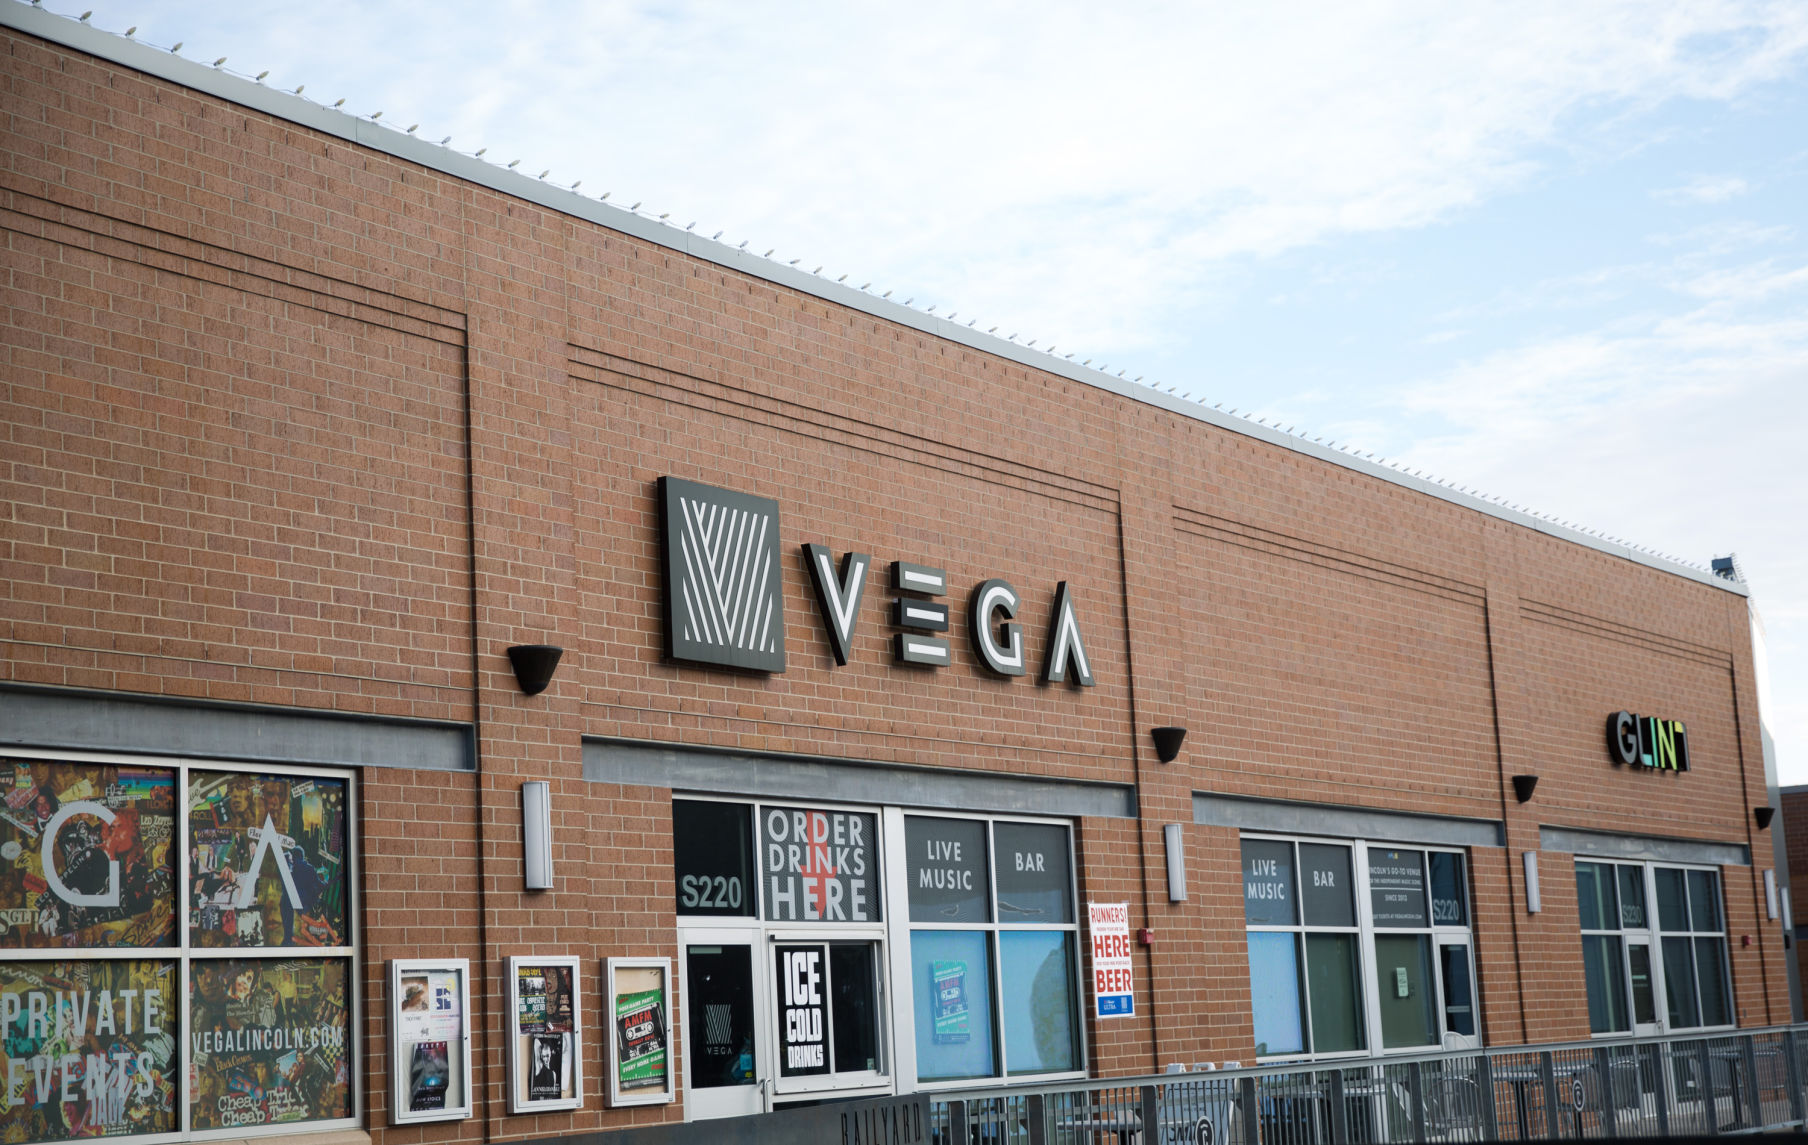 Vega is located on 350 Canopy St. Lincoln Nebraska. & Vega showcasing punk bands Tuesday night | Arts u0026 Entertainment ...